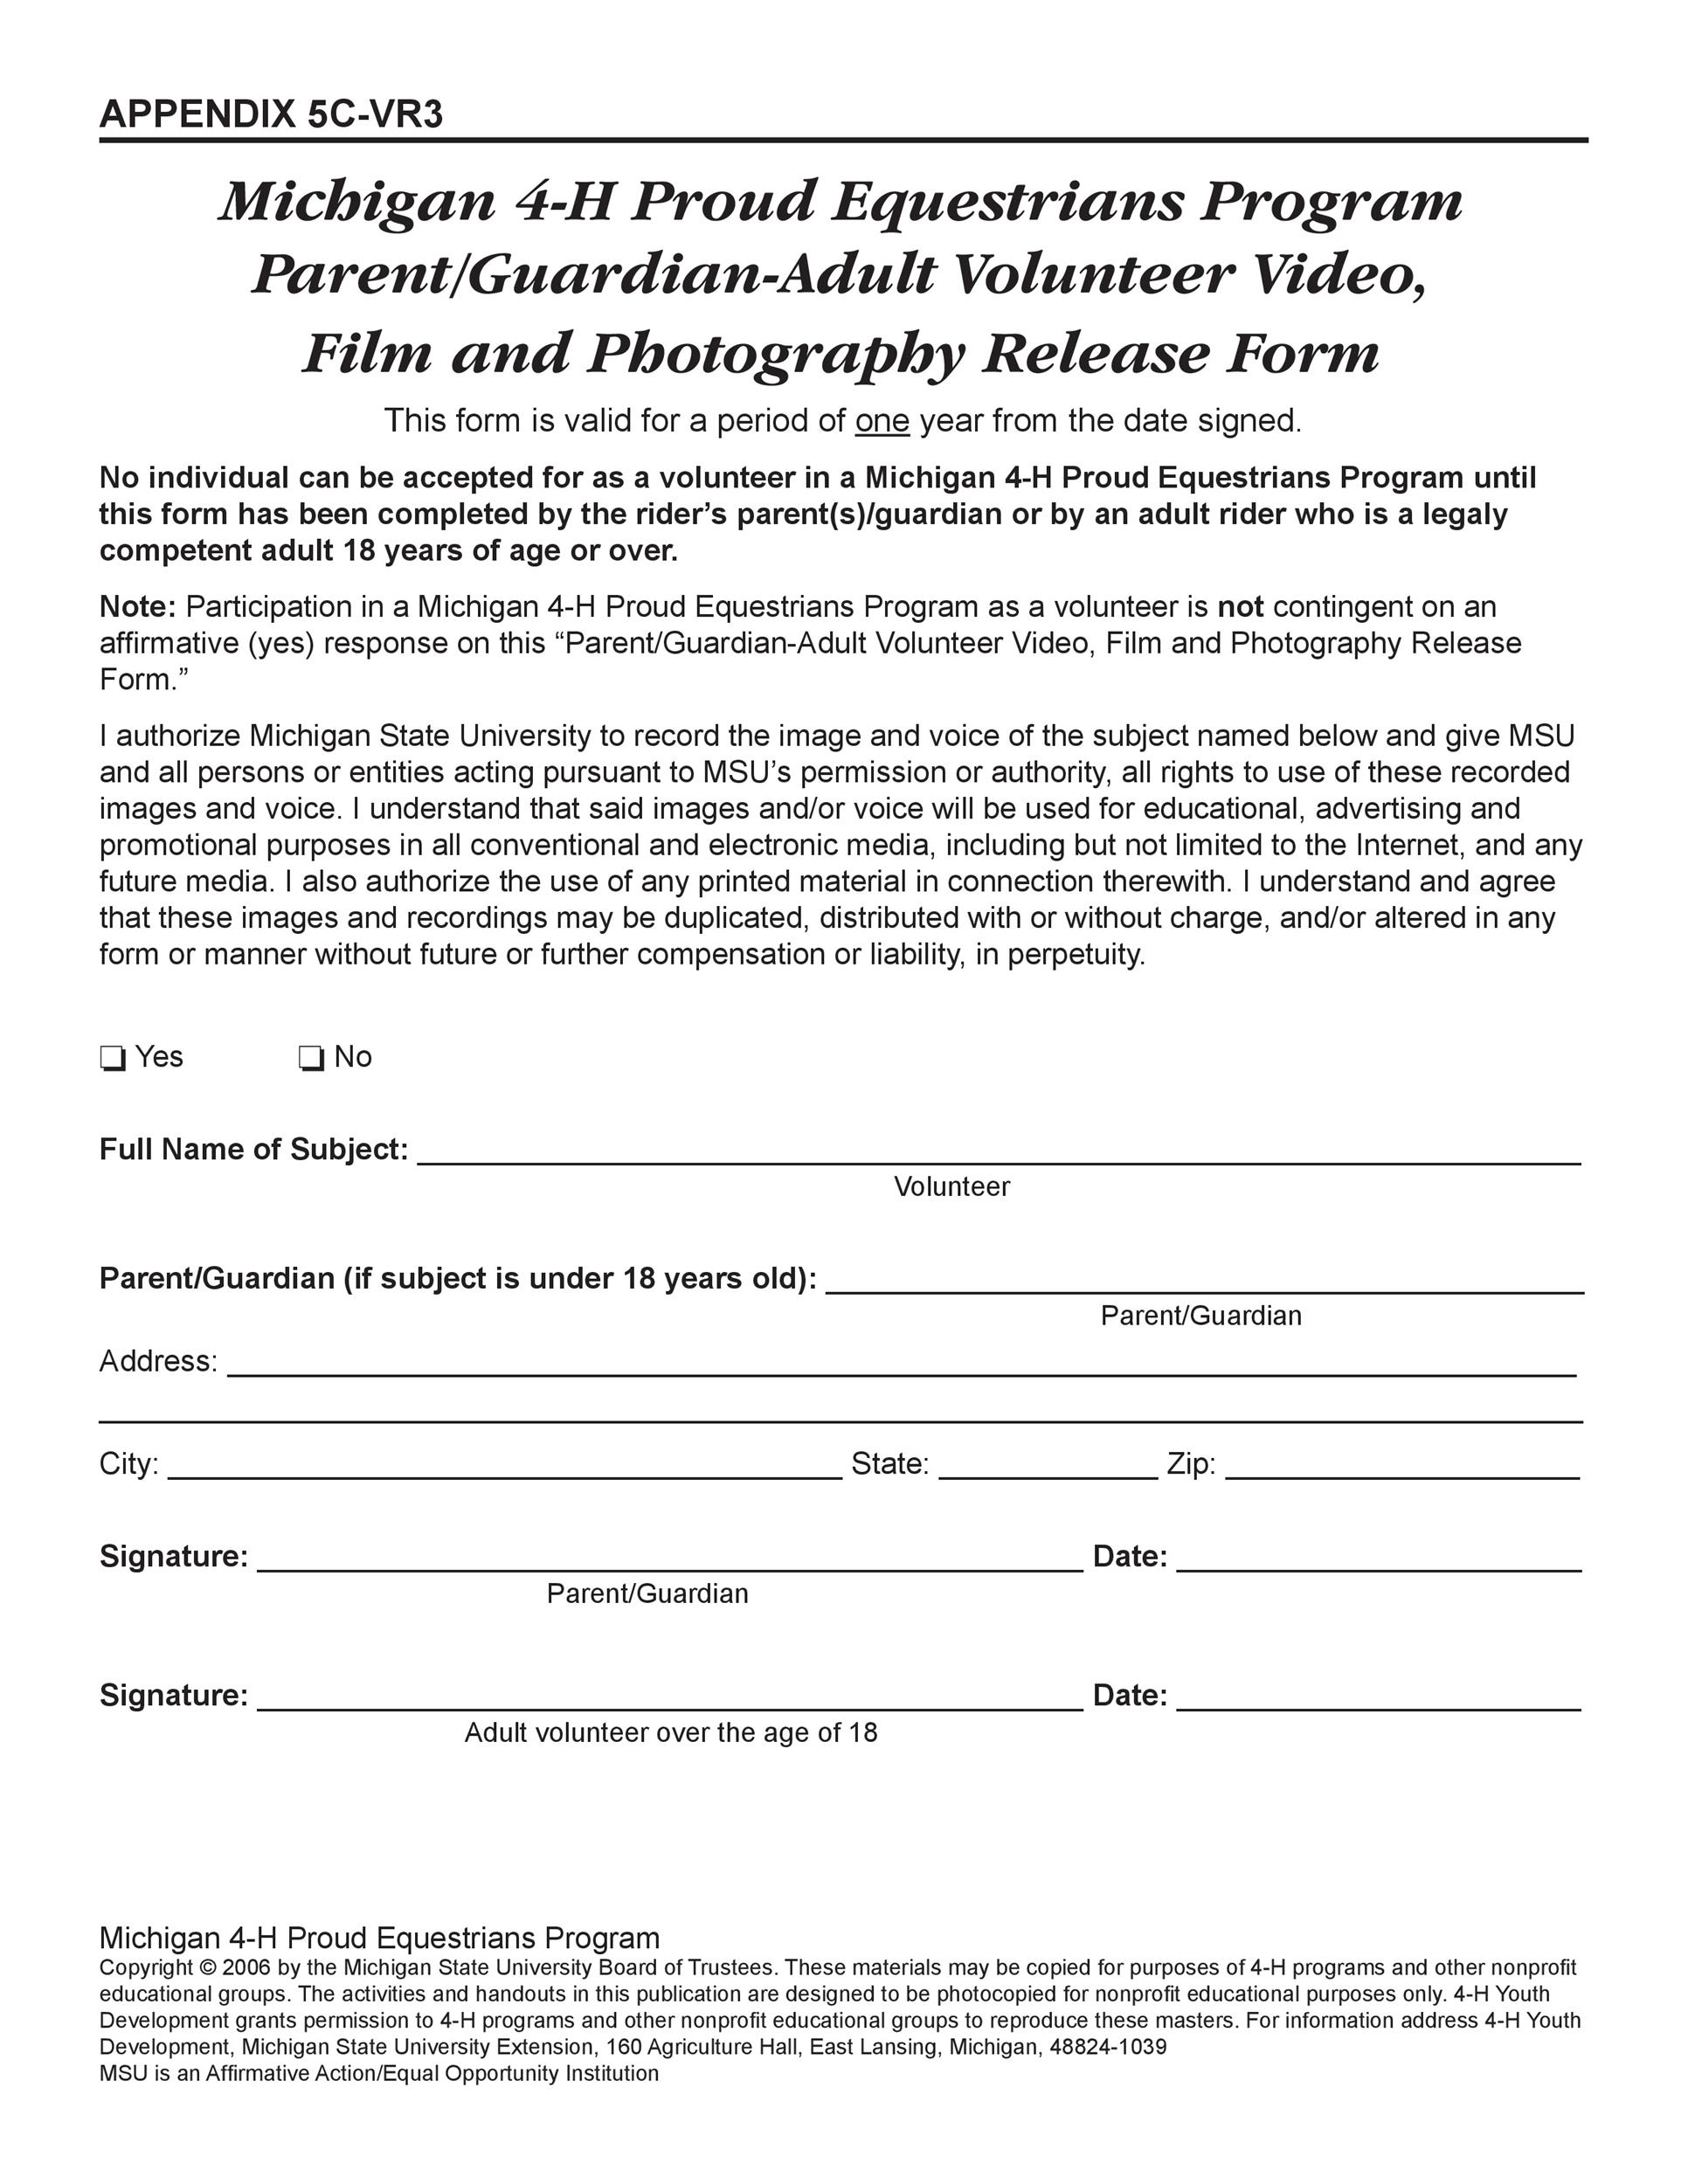 photo release forms 53 FREE Photo Release Form Templates [Word, PDF] - Template Lab